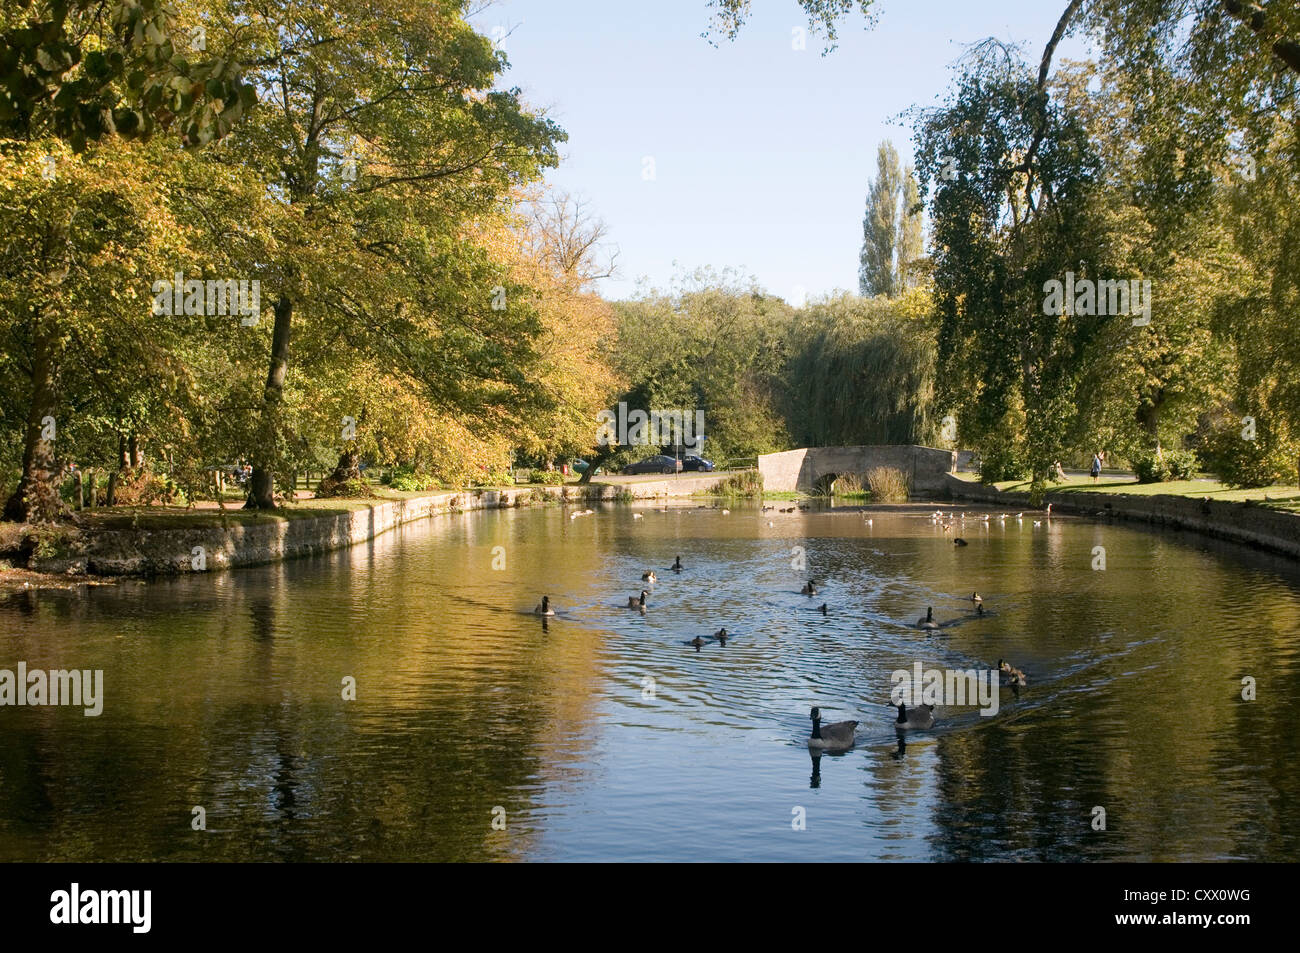 thetford suffolk Little Ouse River uk - Stock Image